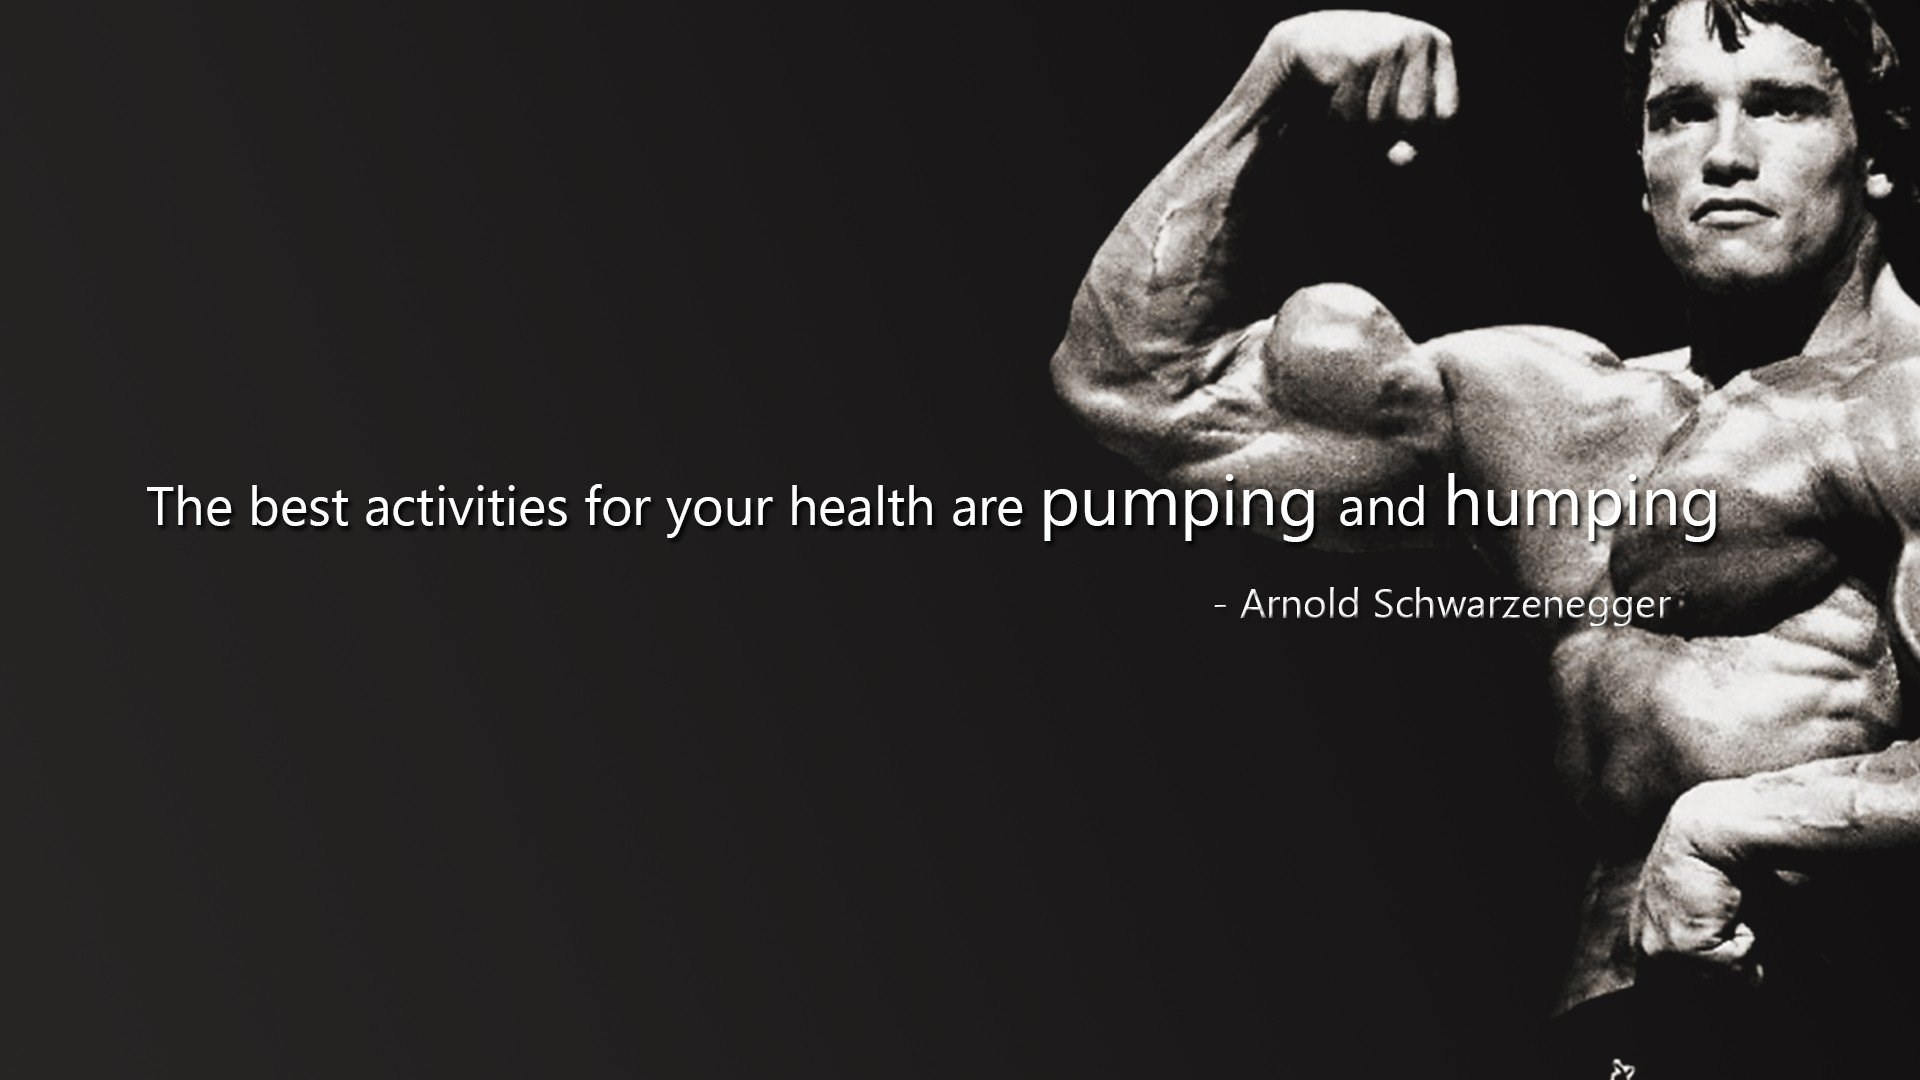 bodybuilding-hd-widescreen-backgrounds-wallpaper-wp3603631